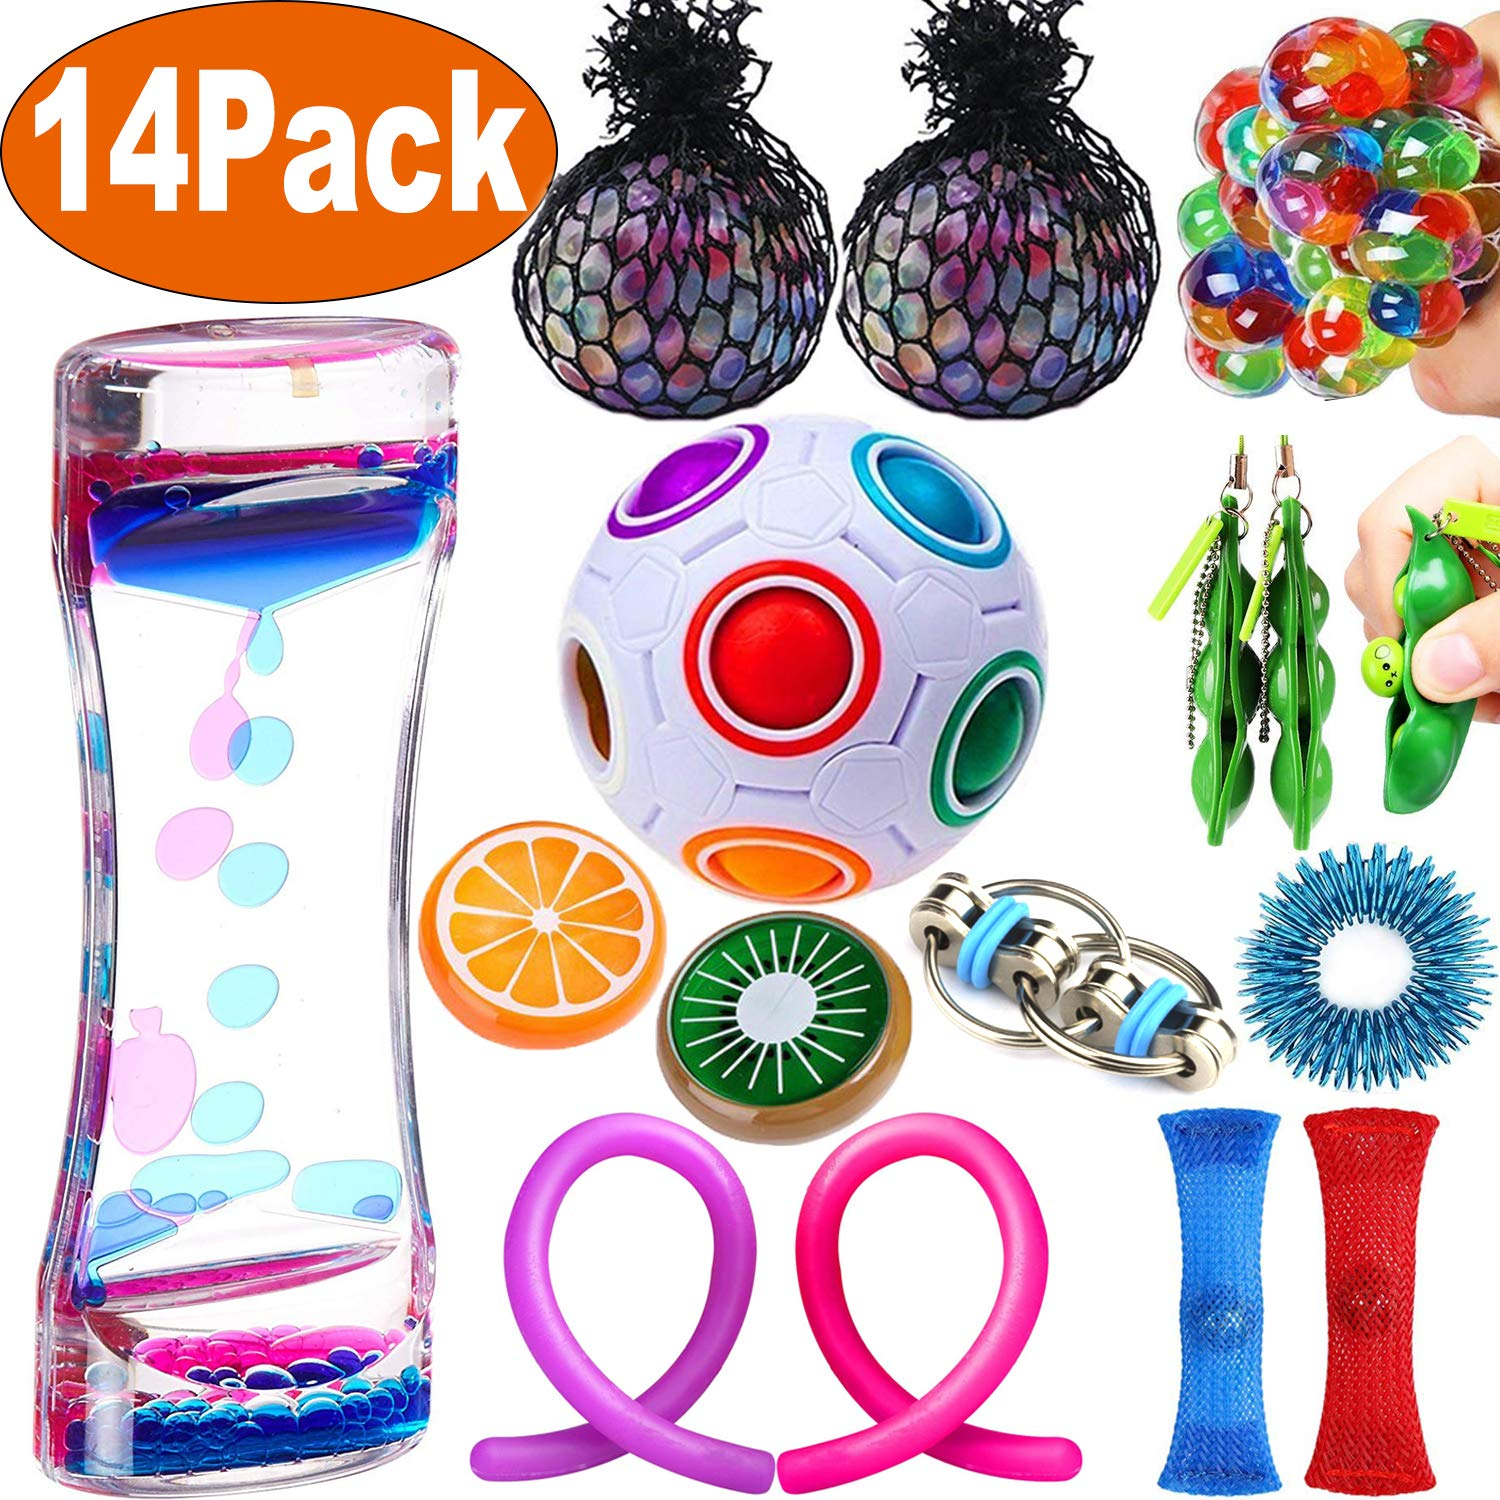 14 Pack Sensory Fidget Toys, Sensory Therapy Toys Including Liquid Motion Timer Bubbler Stretchy String Mesh Squeeze Balls Magic Cube for ADHD Autism Stress Relieve Birthday School Party